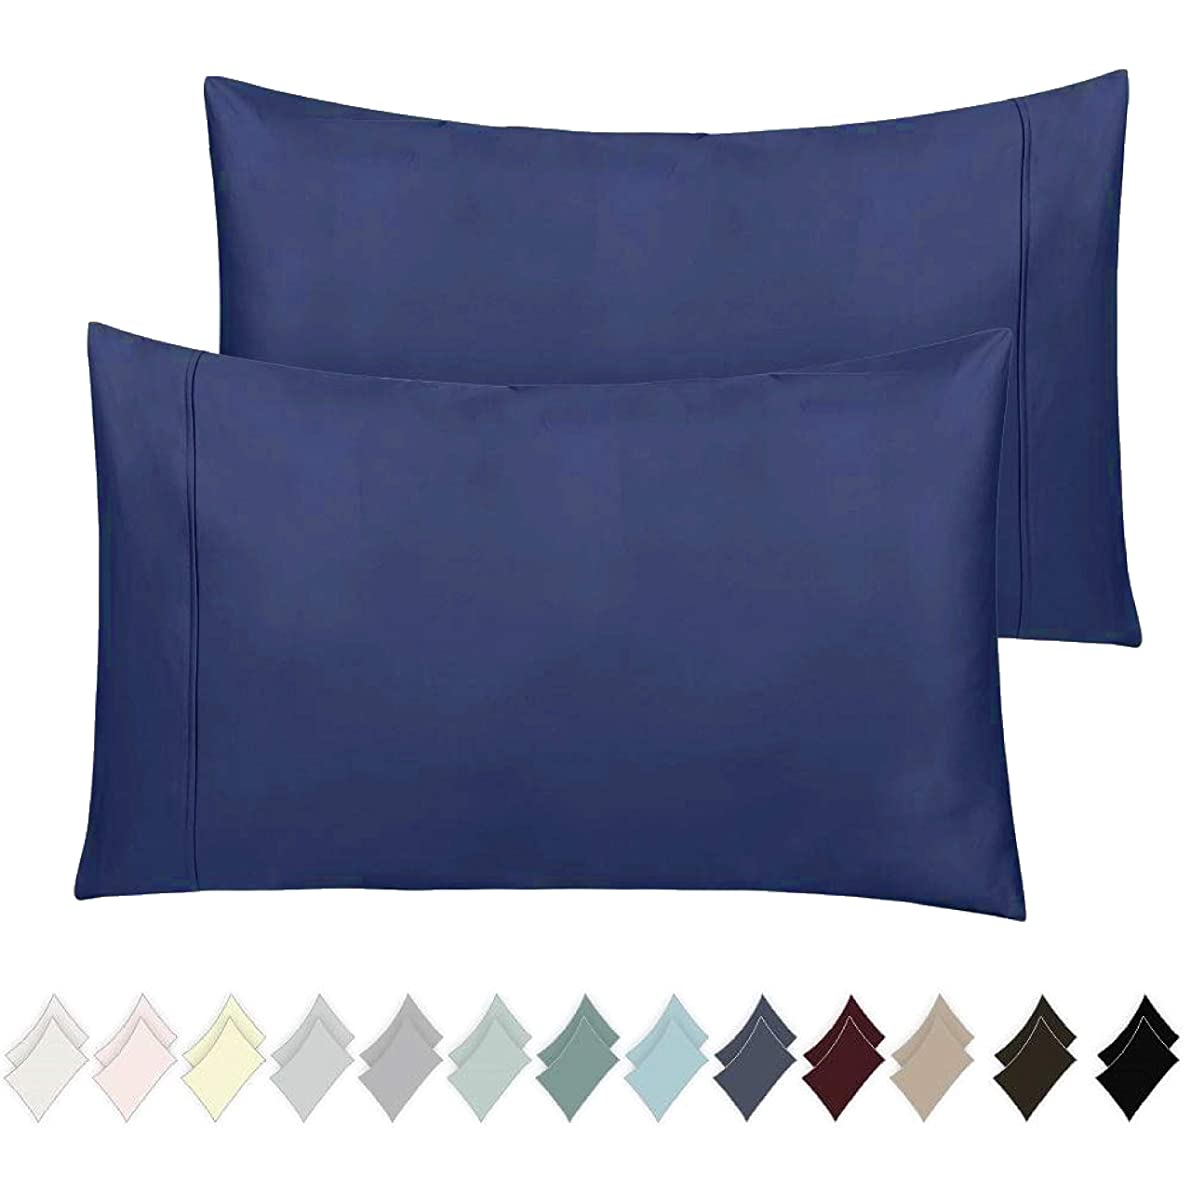 400 Thread Count 100% Cotton Pillow Cases, Royal Blue Standard Pillowcase Set of 2, Long-Staple Combed Pure Natural Cotton Pillows for Sleeping, Soft & Silky Sateen Weave Bed Pillow Covers